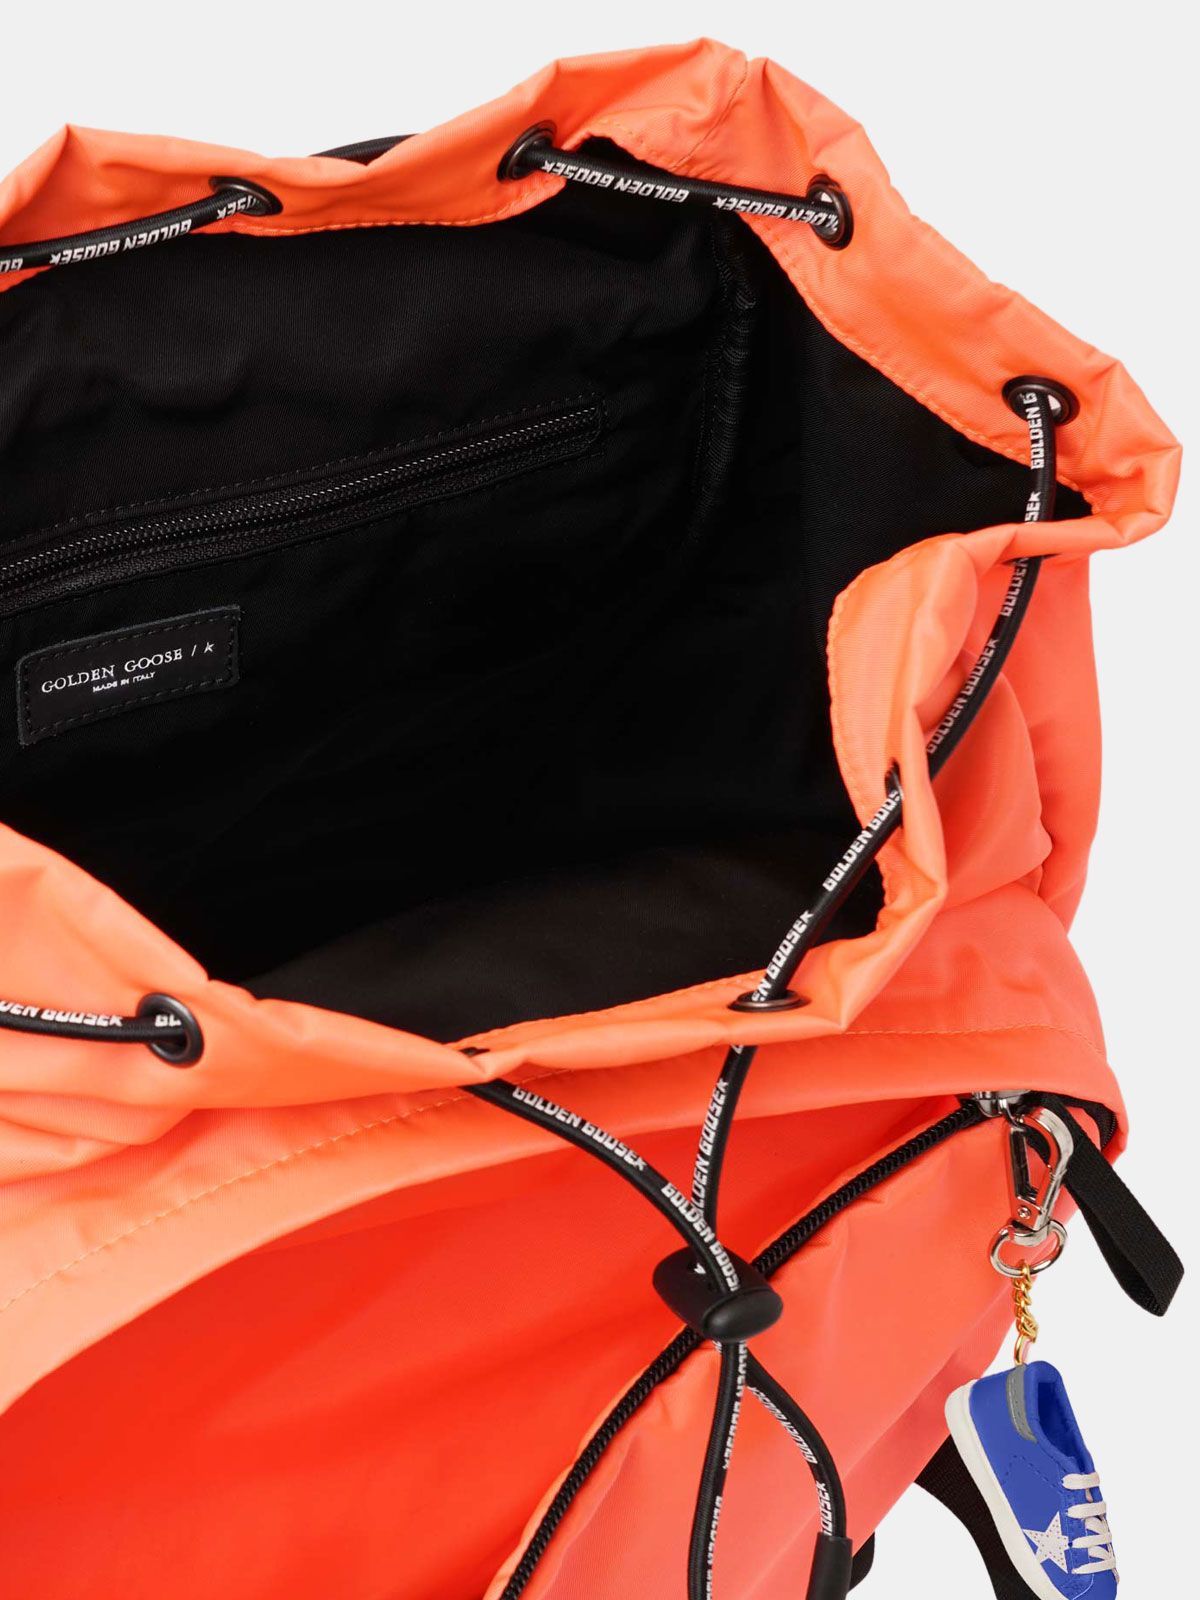 Golden Goose - Fluorescent orange nylon Journey backpack in